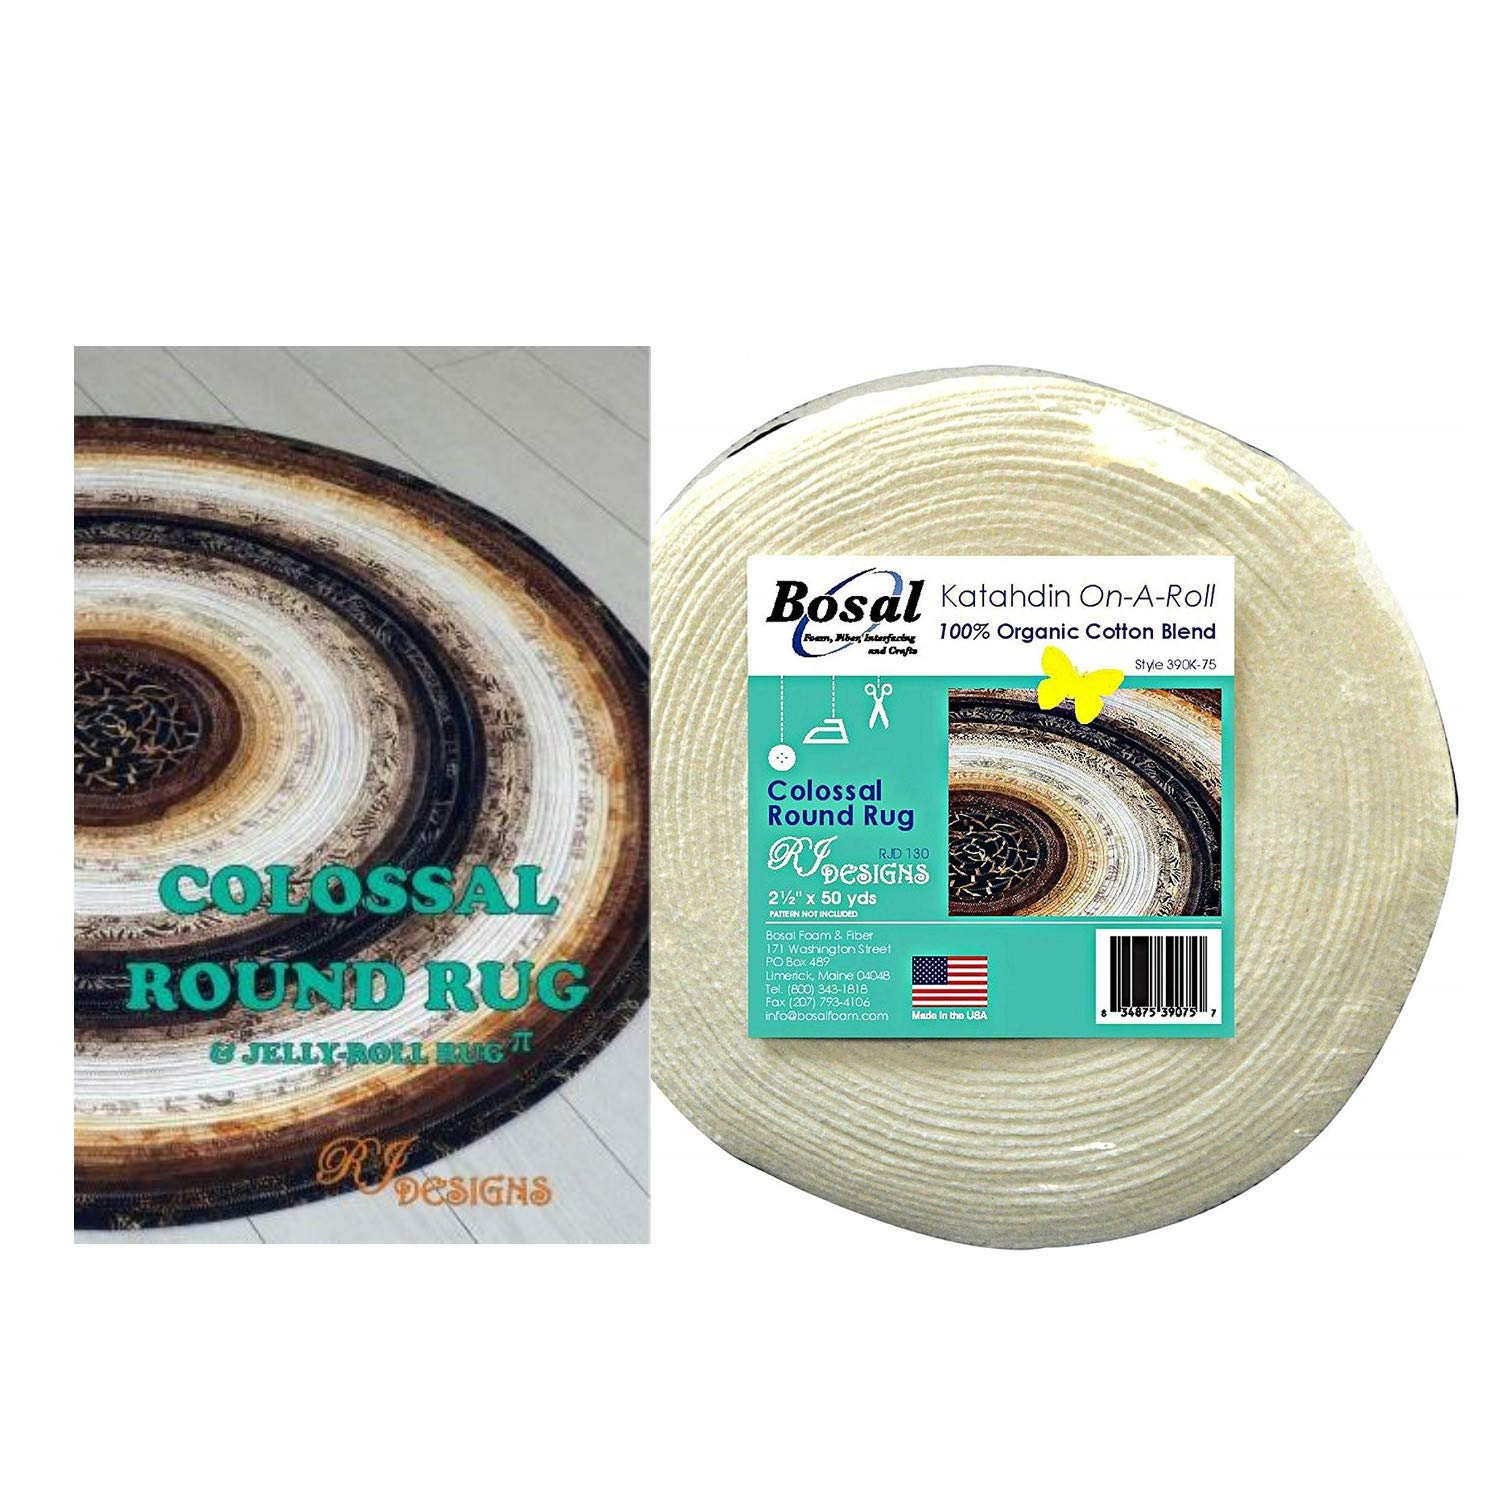 Jelly Roll Rug Colossal Bundle, Including Ptrn & 1 50 Yd Roll of Bosal Batting